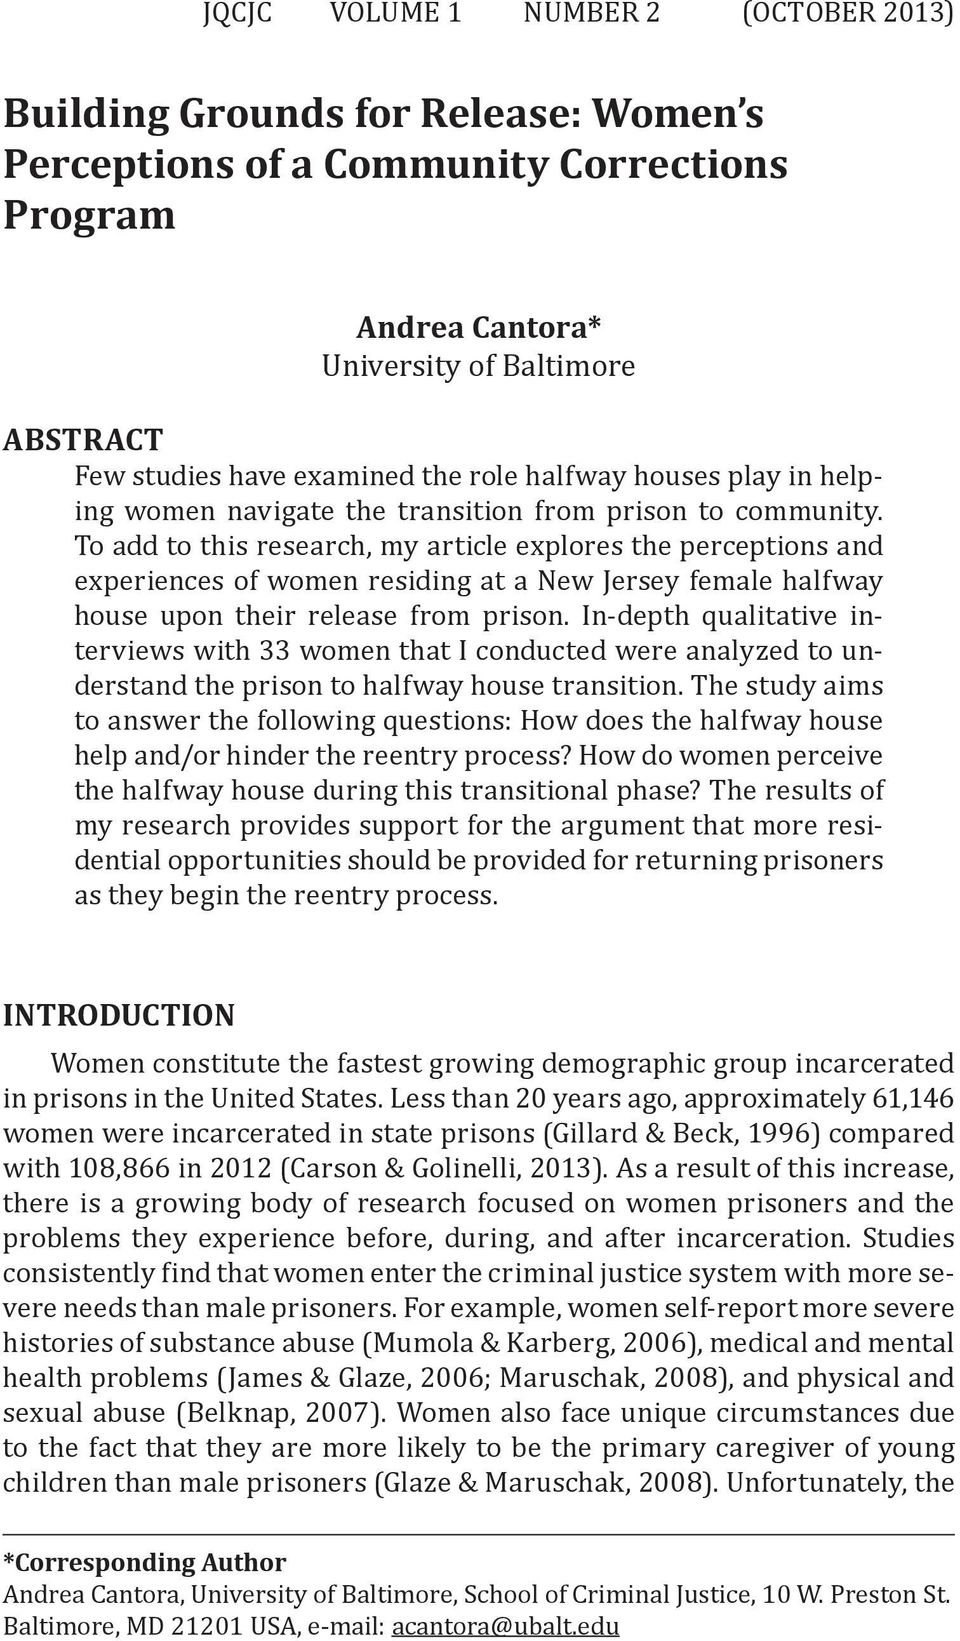 To add to this research, my article explores the perceptions and experiences of women residing at a New Jersey female halfway house upon their release from prison.